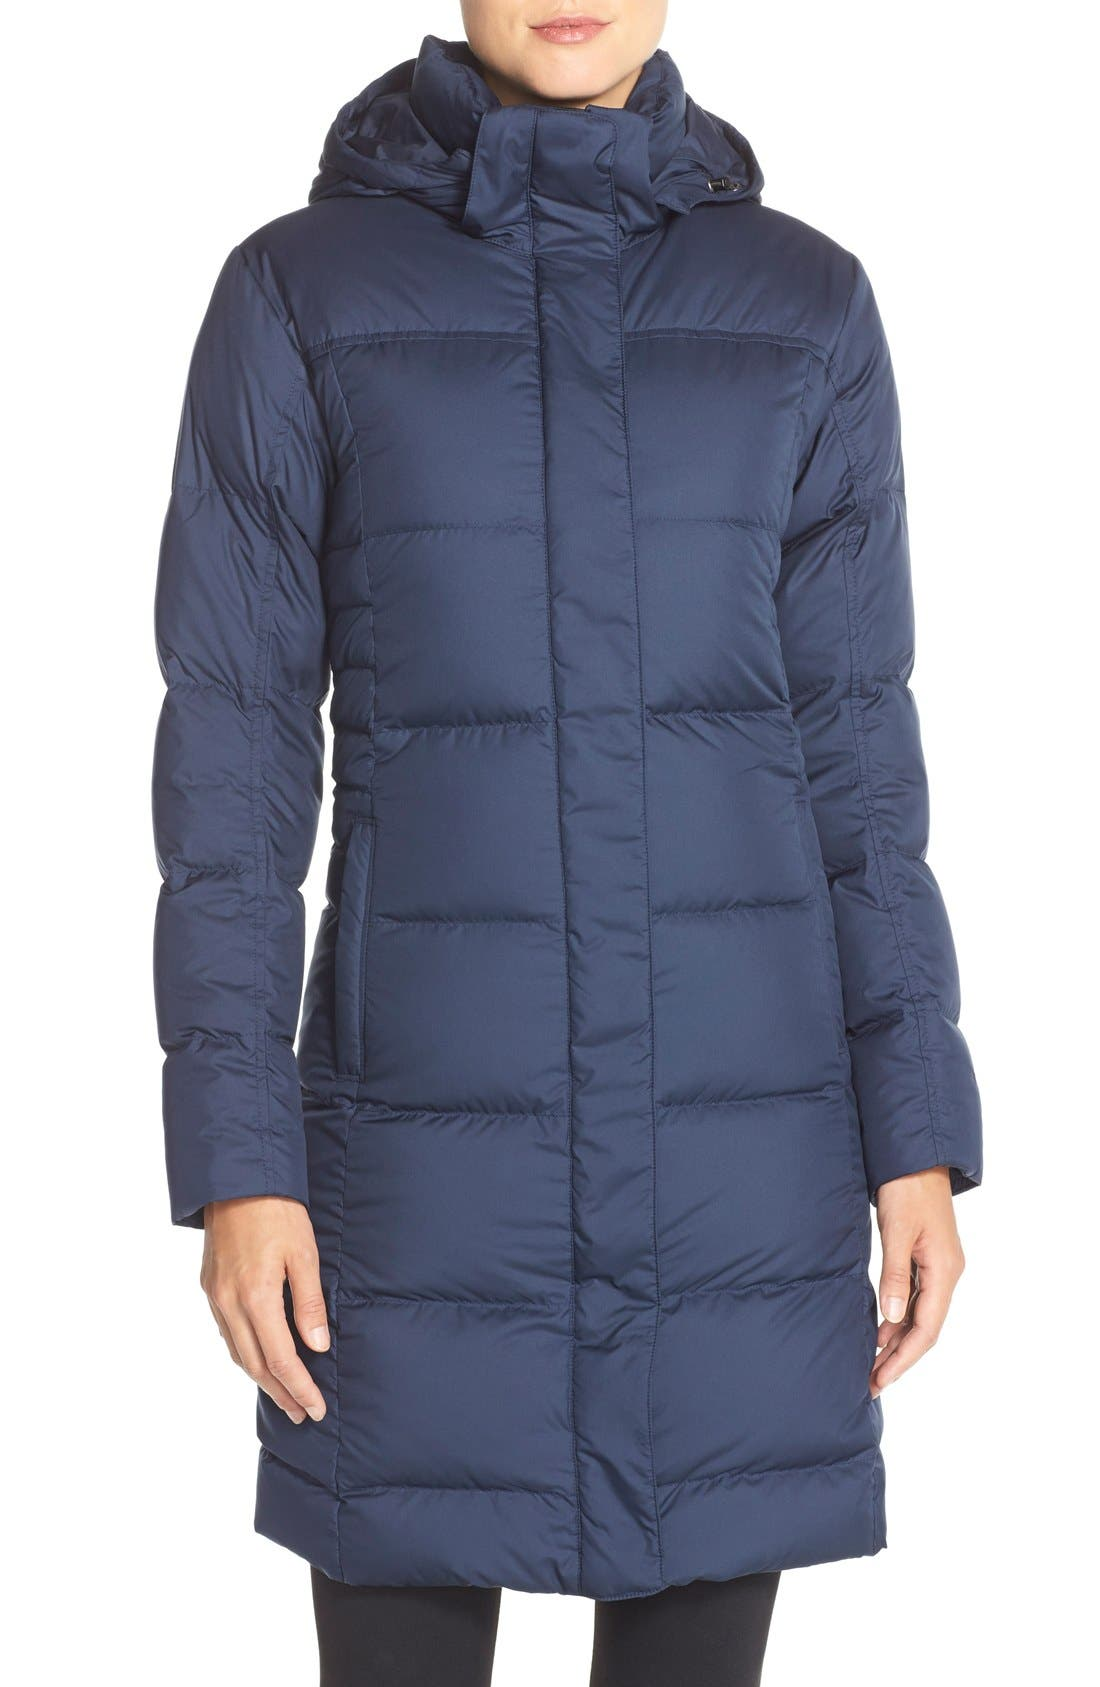 Patagonia 'Down with It' Water Repellent Parka